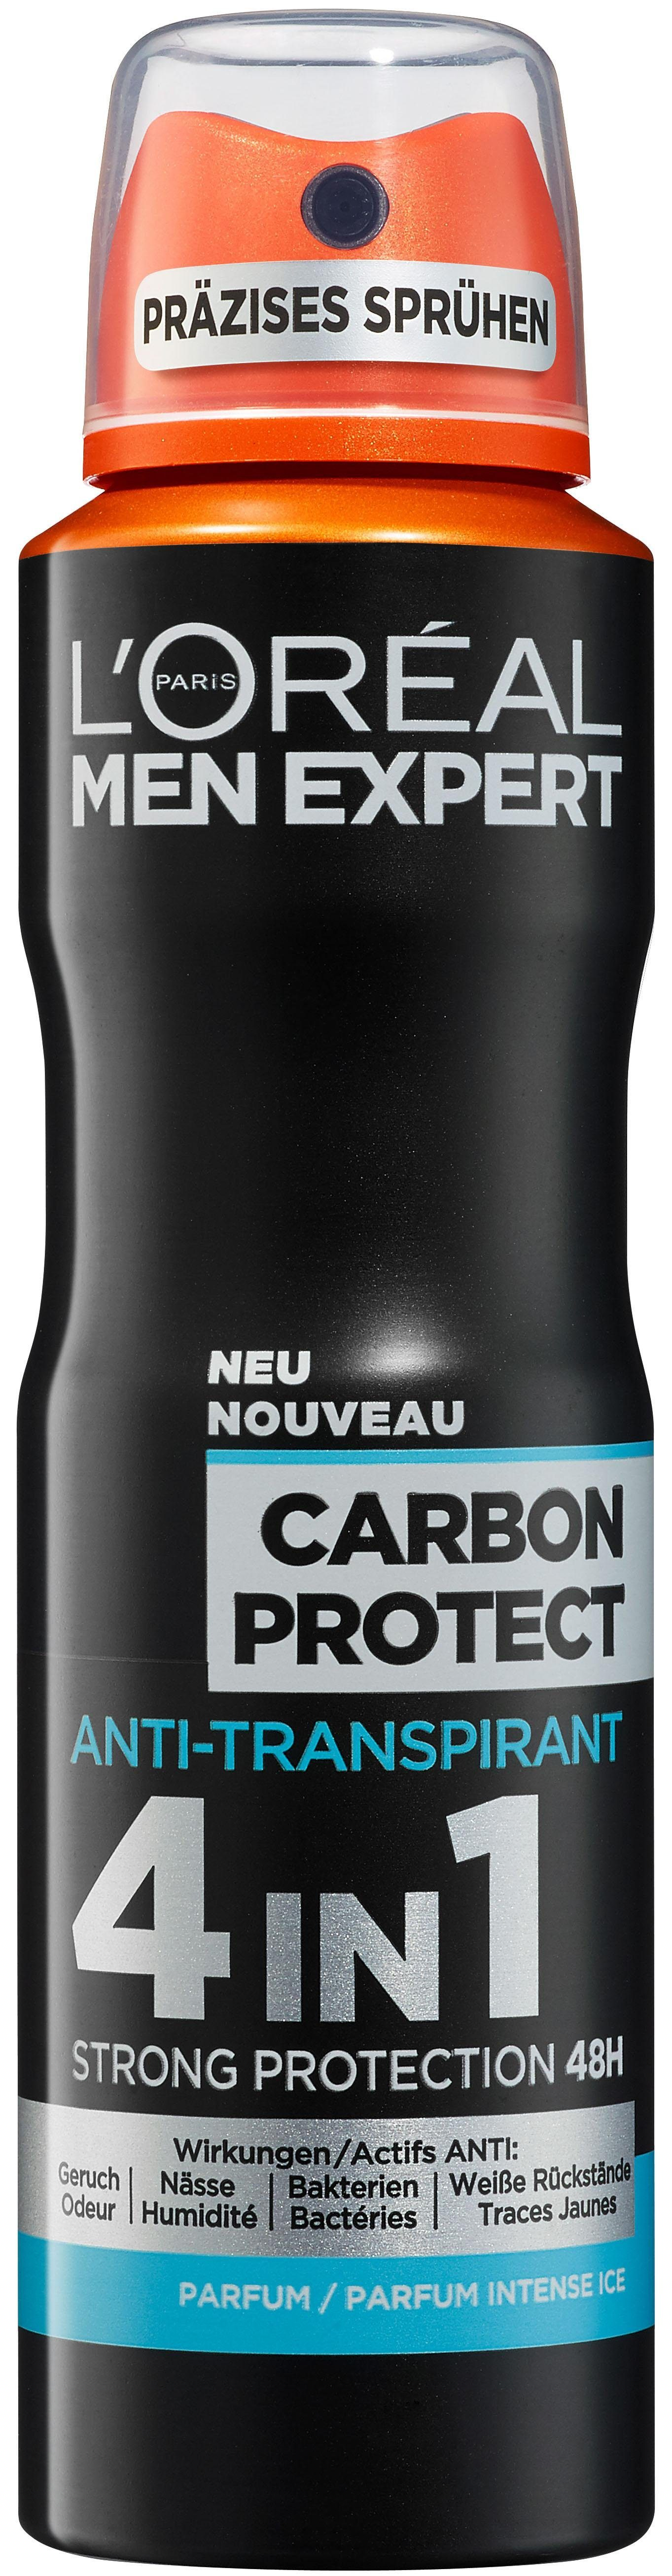 L'Oréal Paris Men Expert, »Carbon Protect«, Deo-Spray